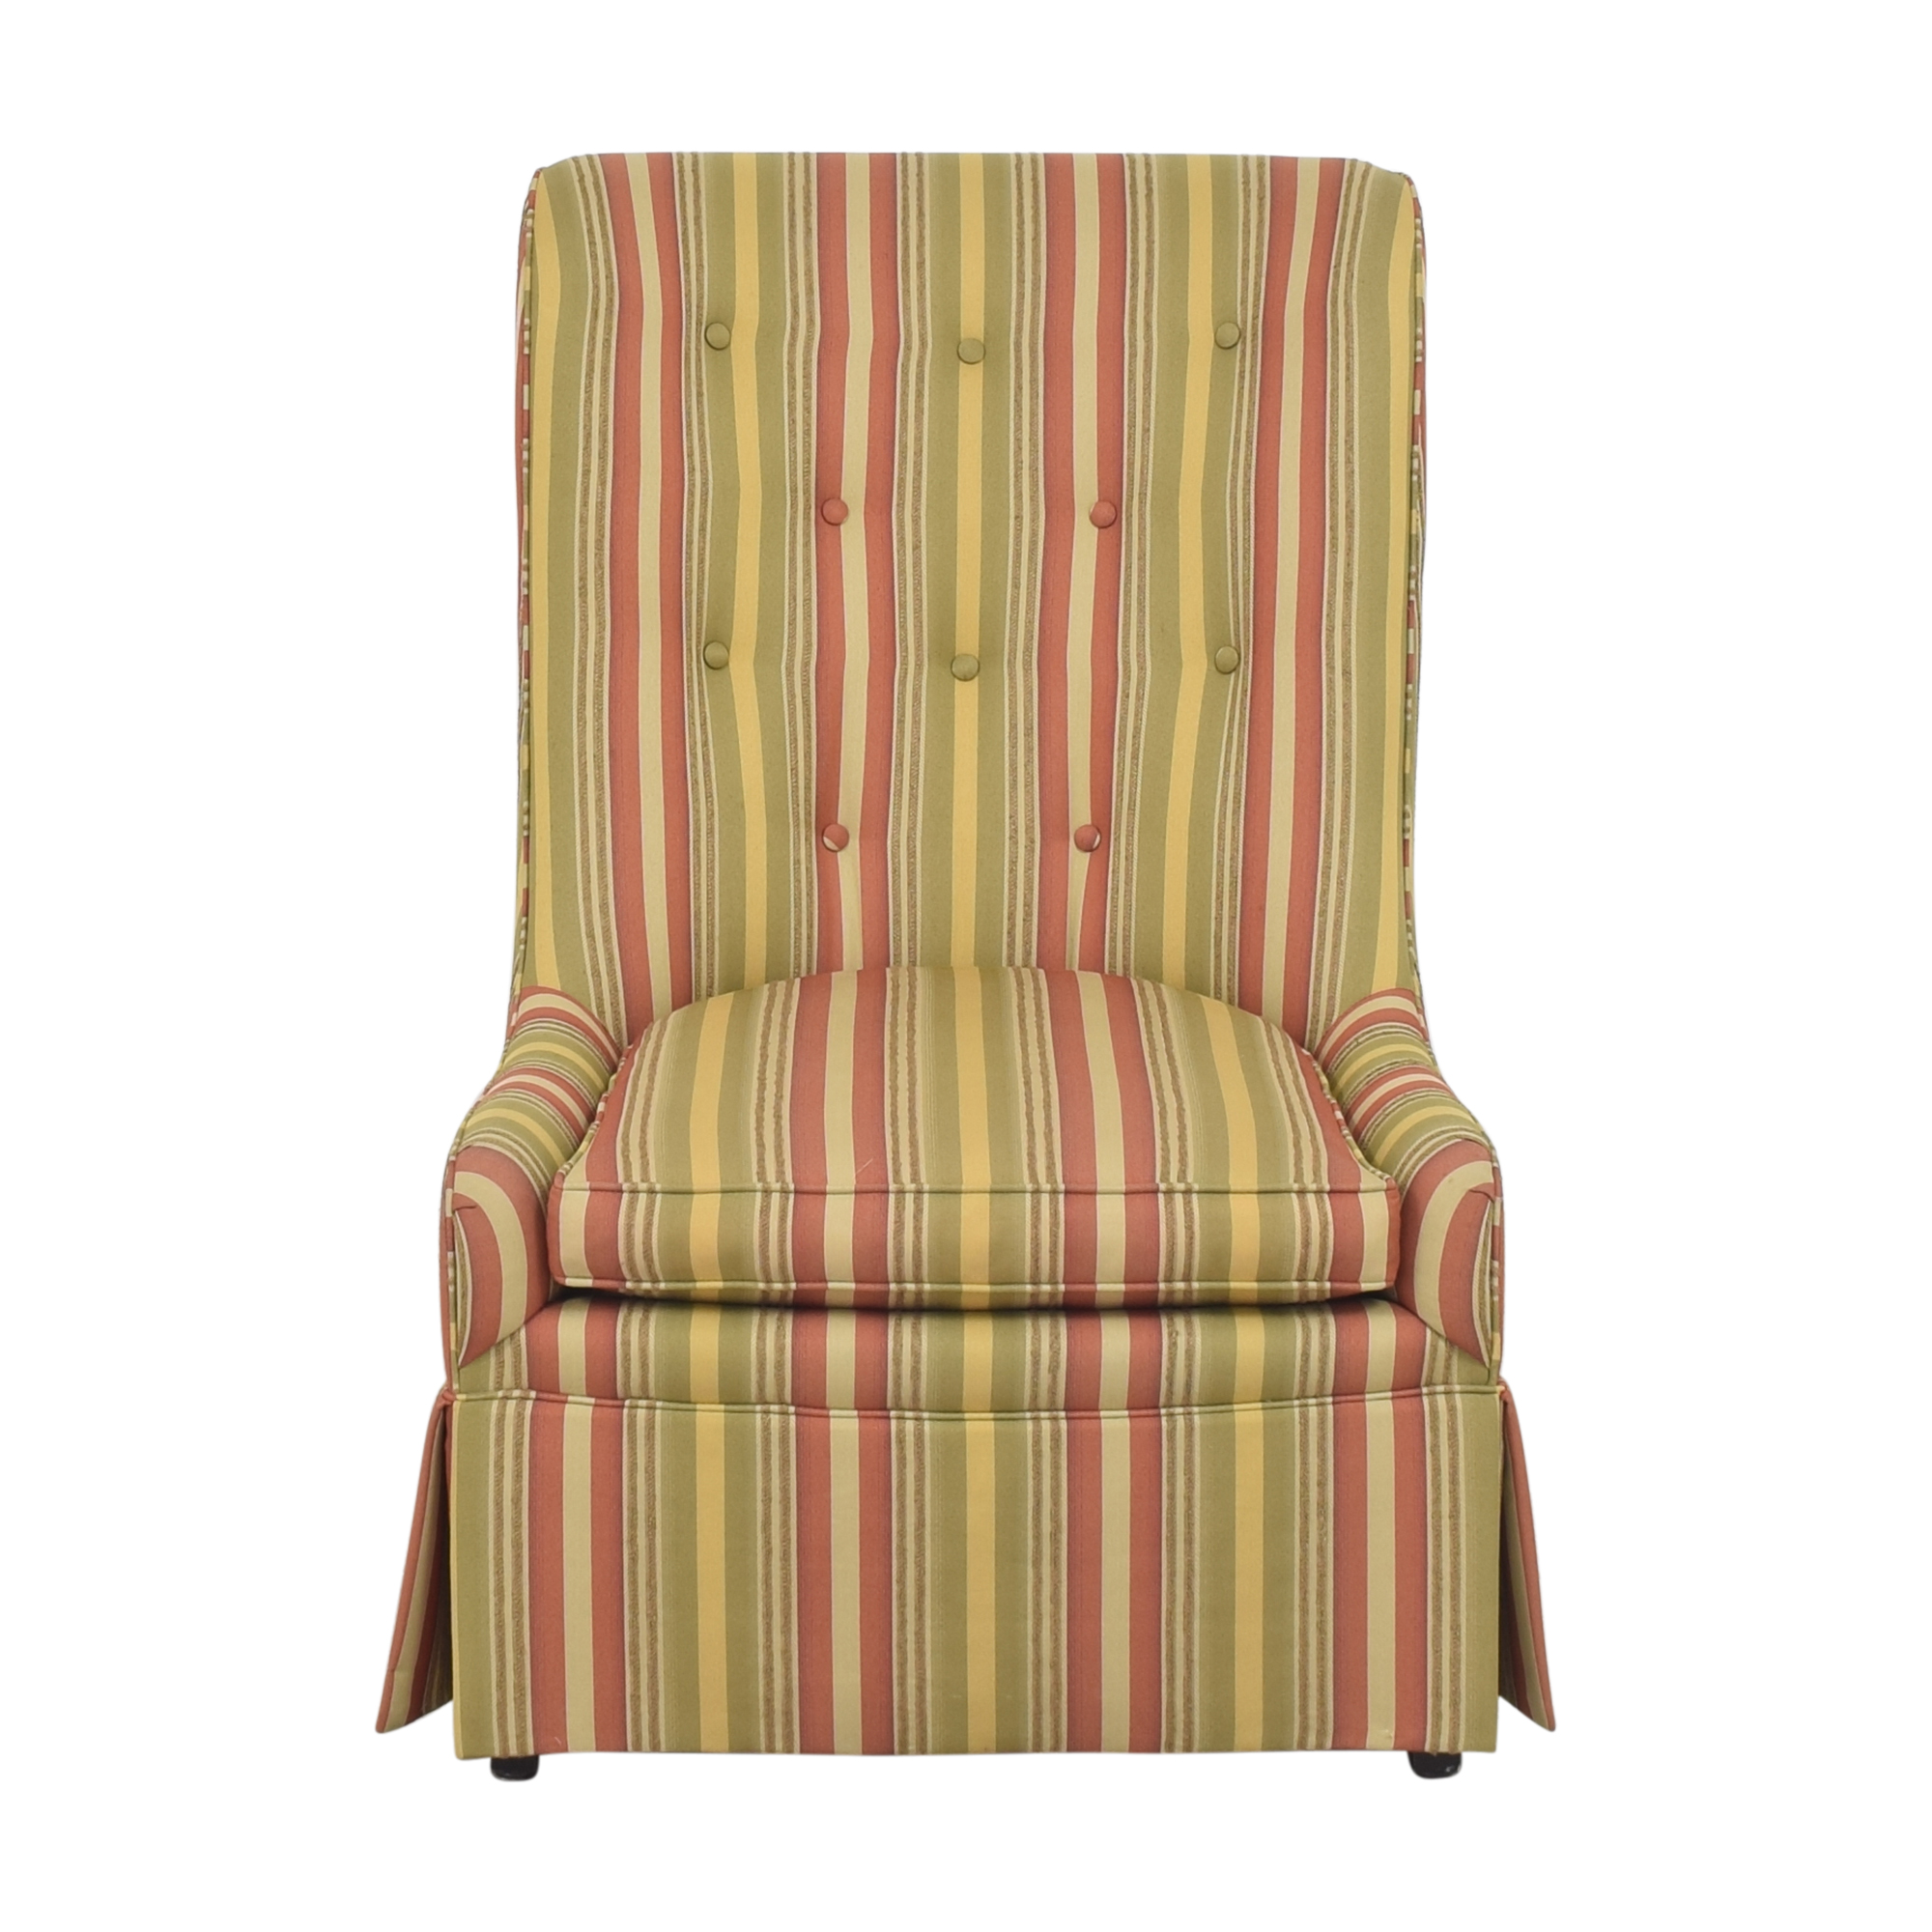 Theodore Alexander Theodore Alexander Althorp Living History Accent Chair nj